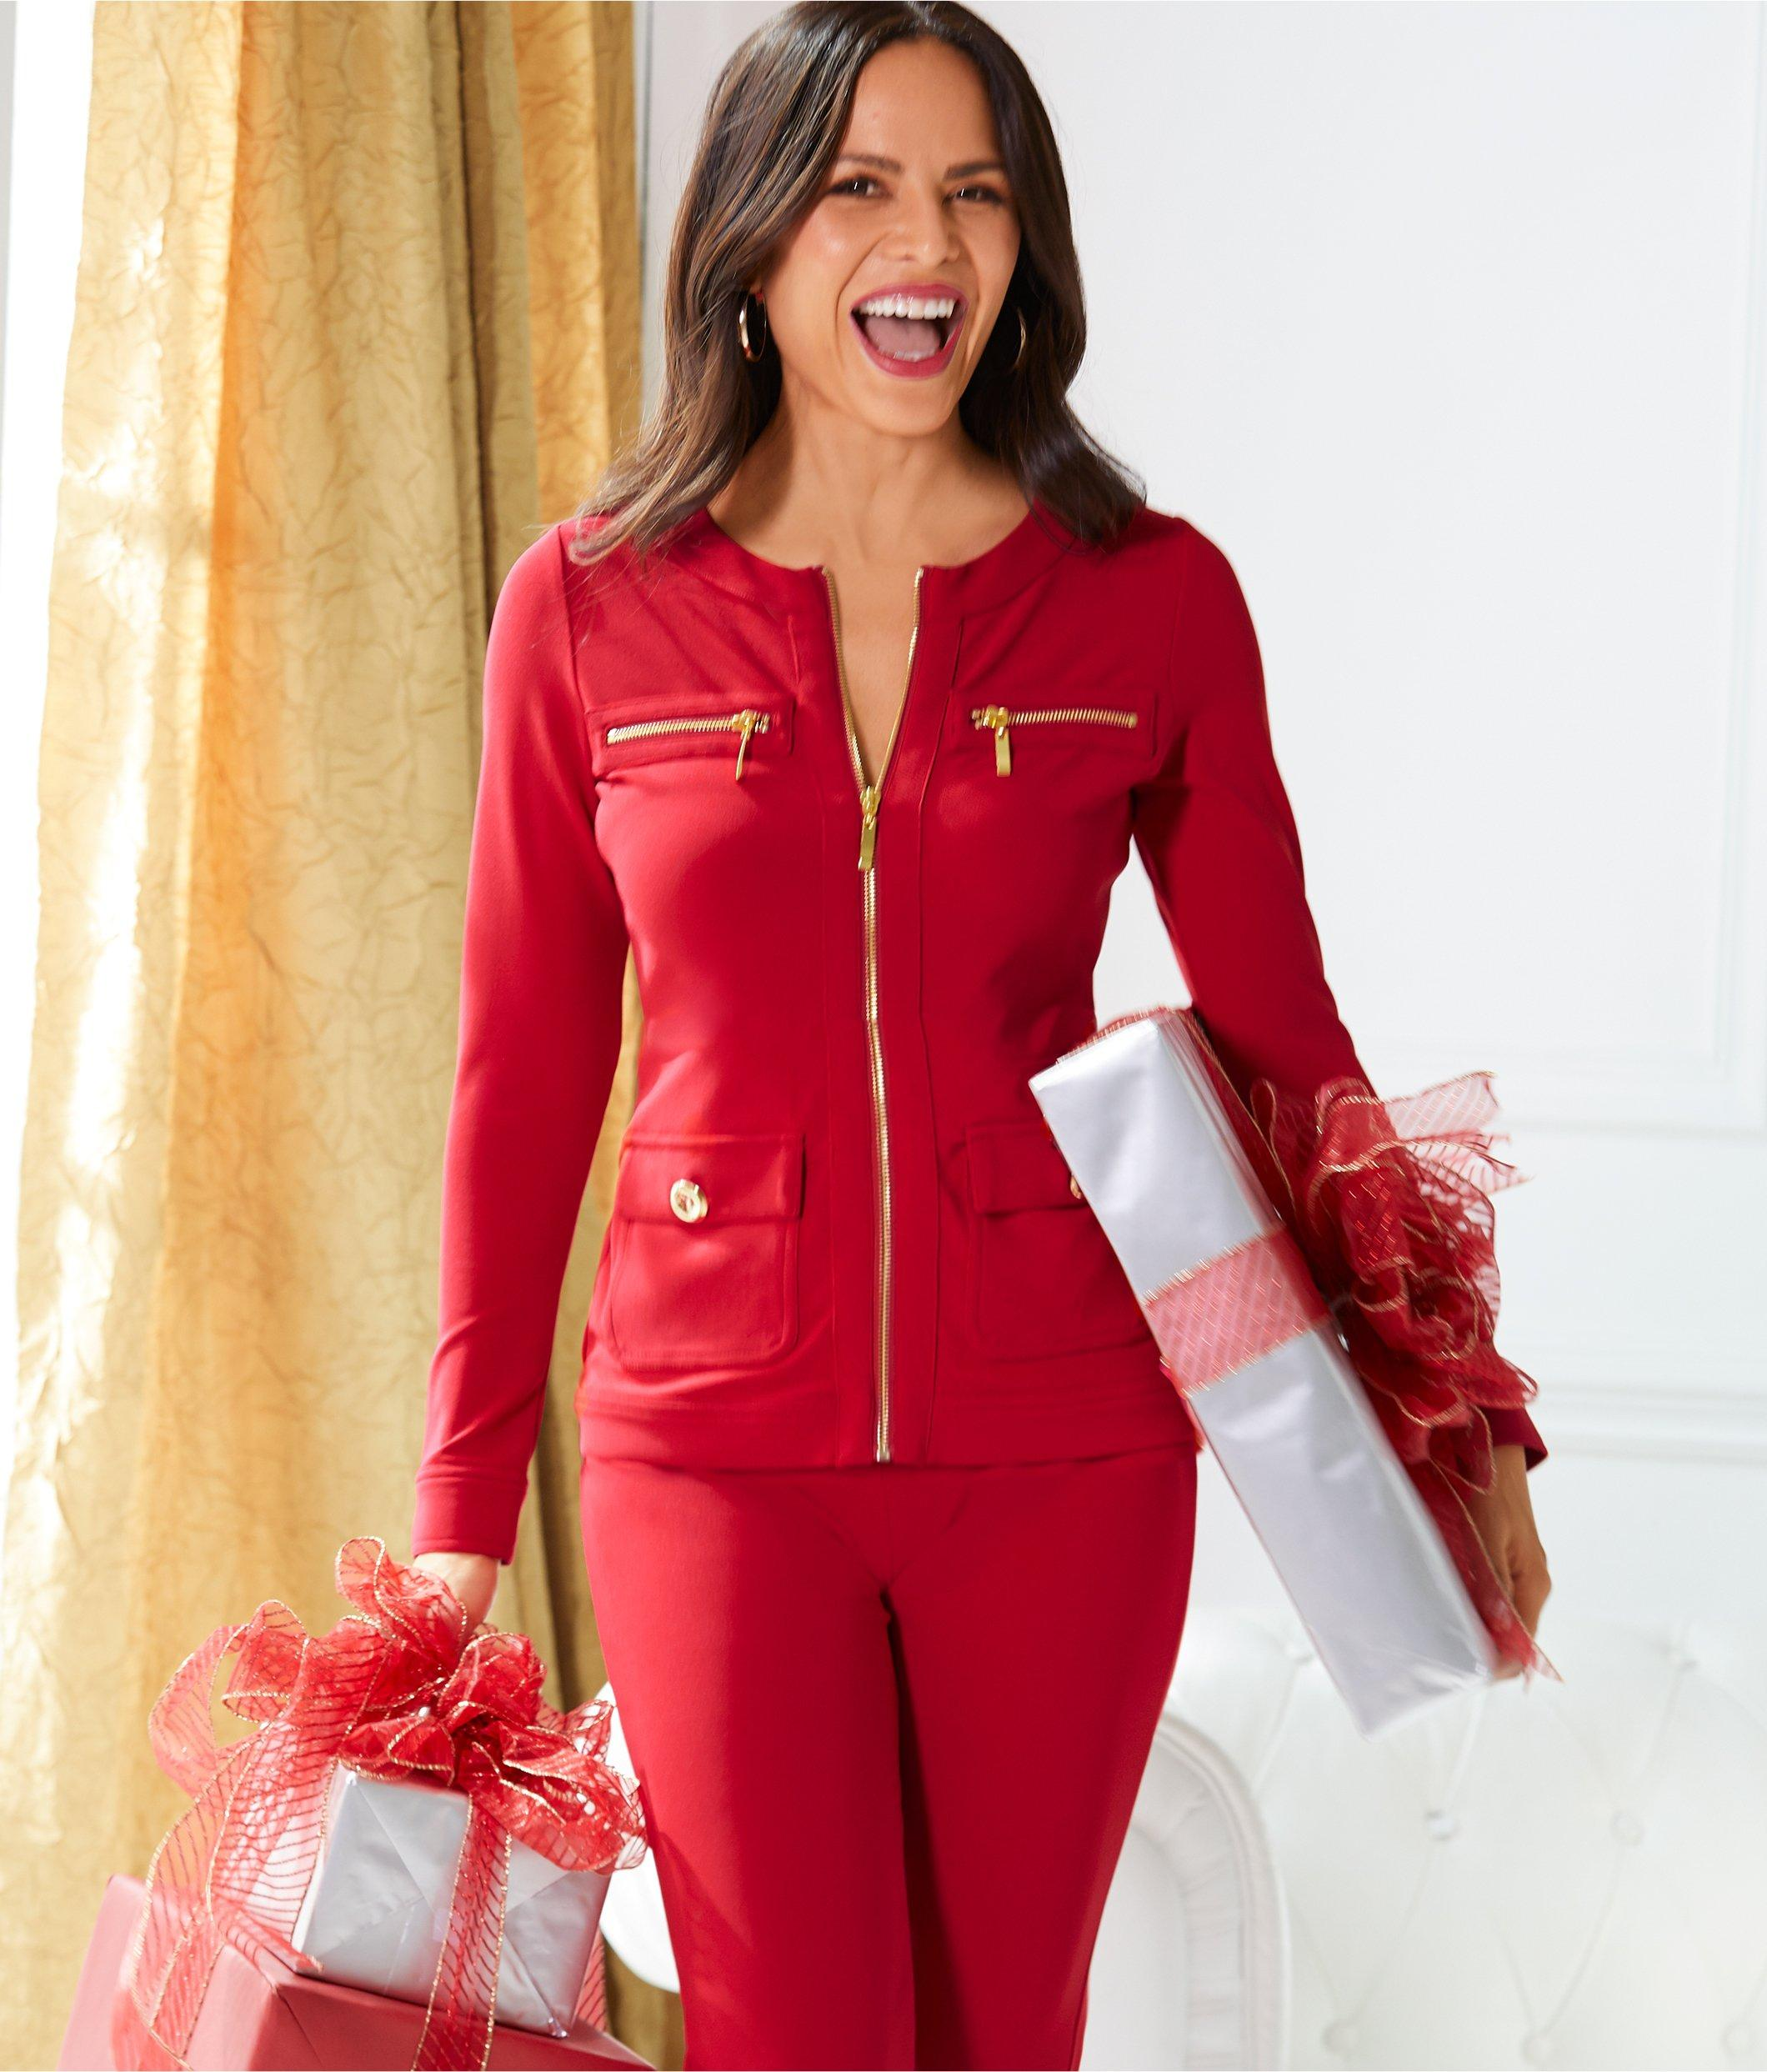 model wearing red travel coordinates while holding wrapped gifts.